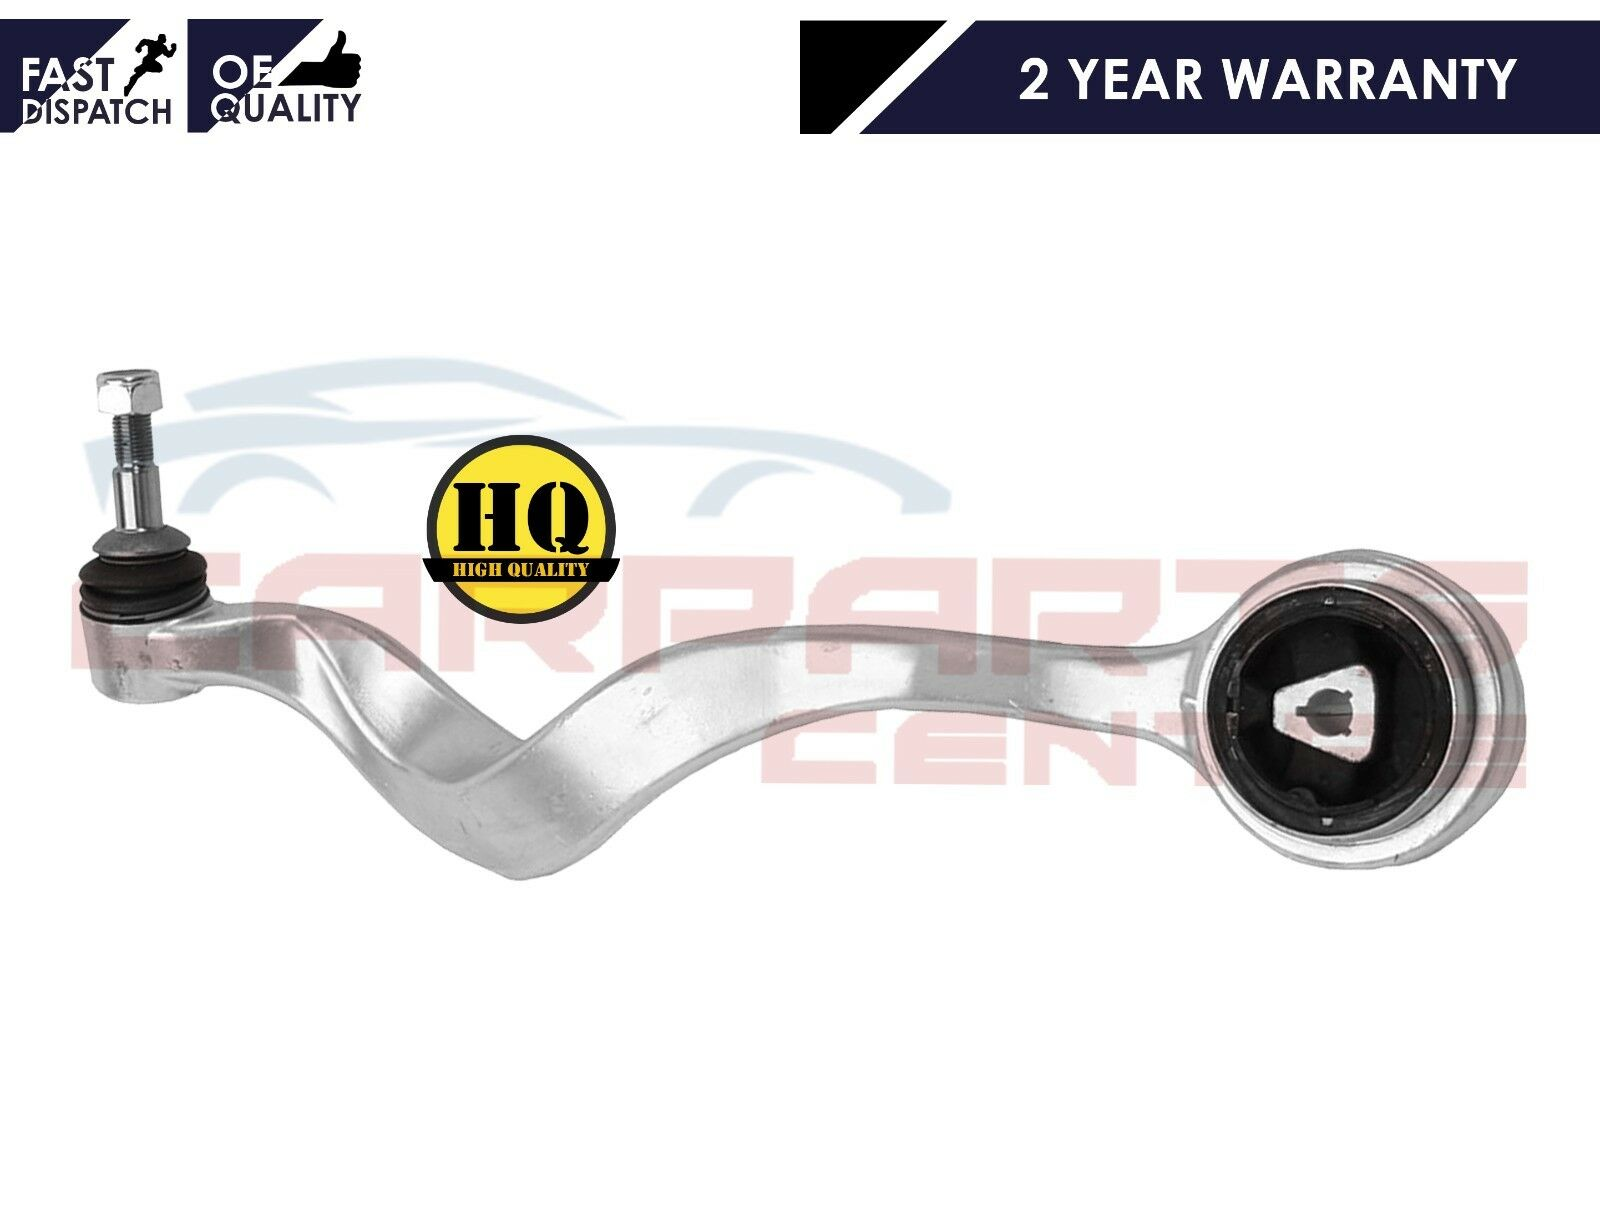 FOR BMW 520d 525d 530d 535d FRONT LOWER REAR RIGHT SUSPENSION TRACK CONTROL ARM